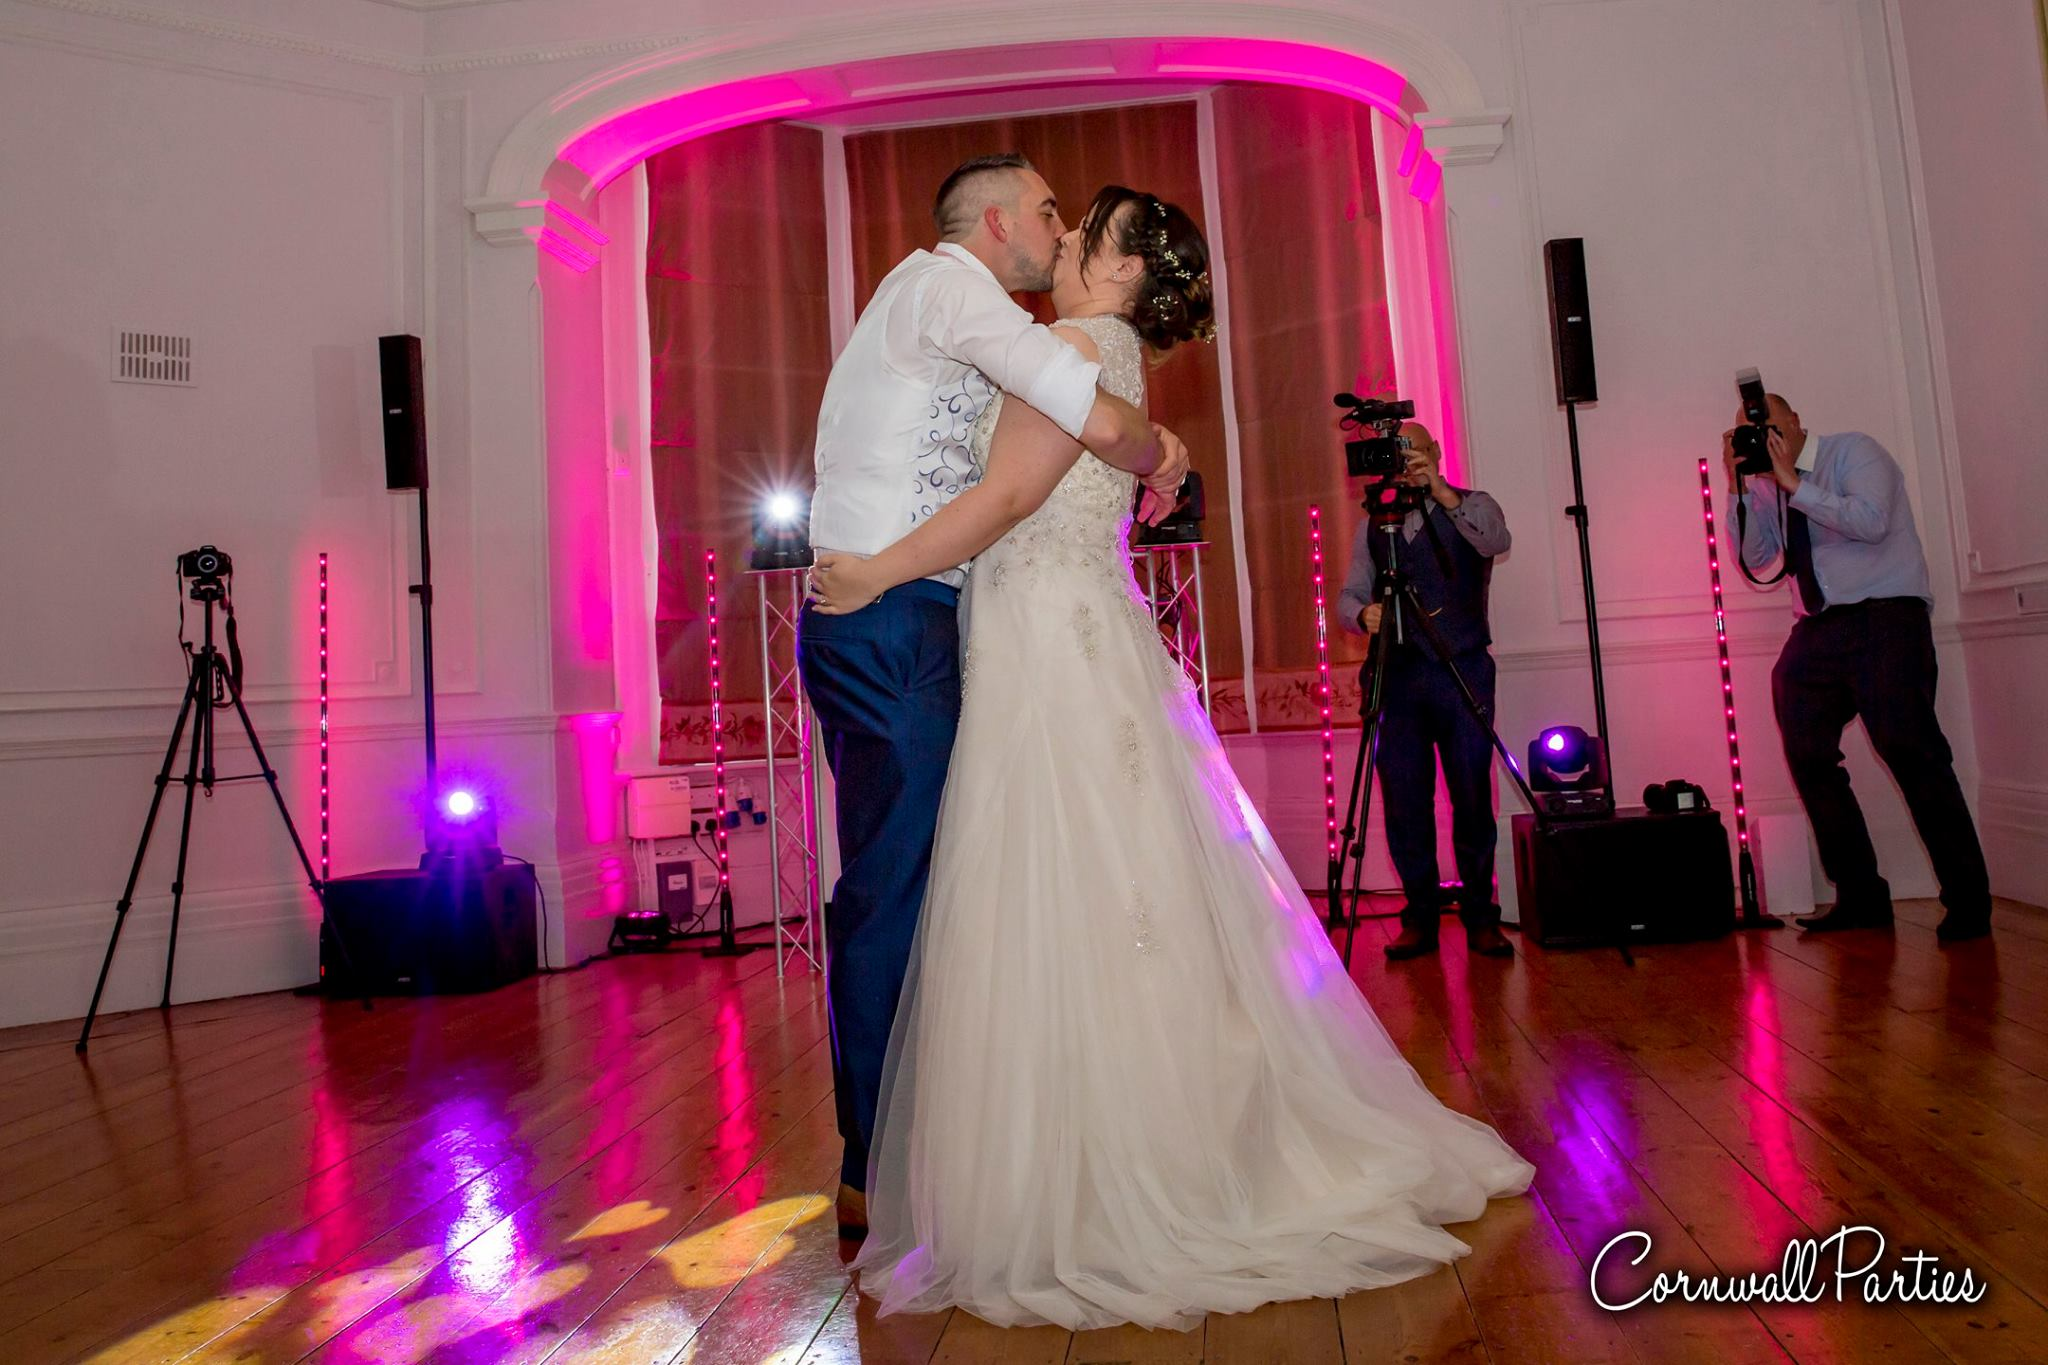 cornwall wedding disco dj photographer 18